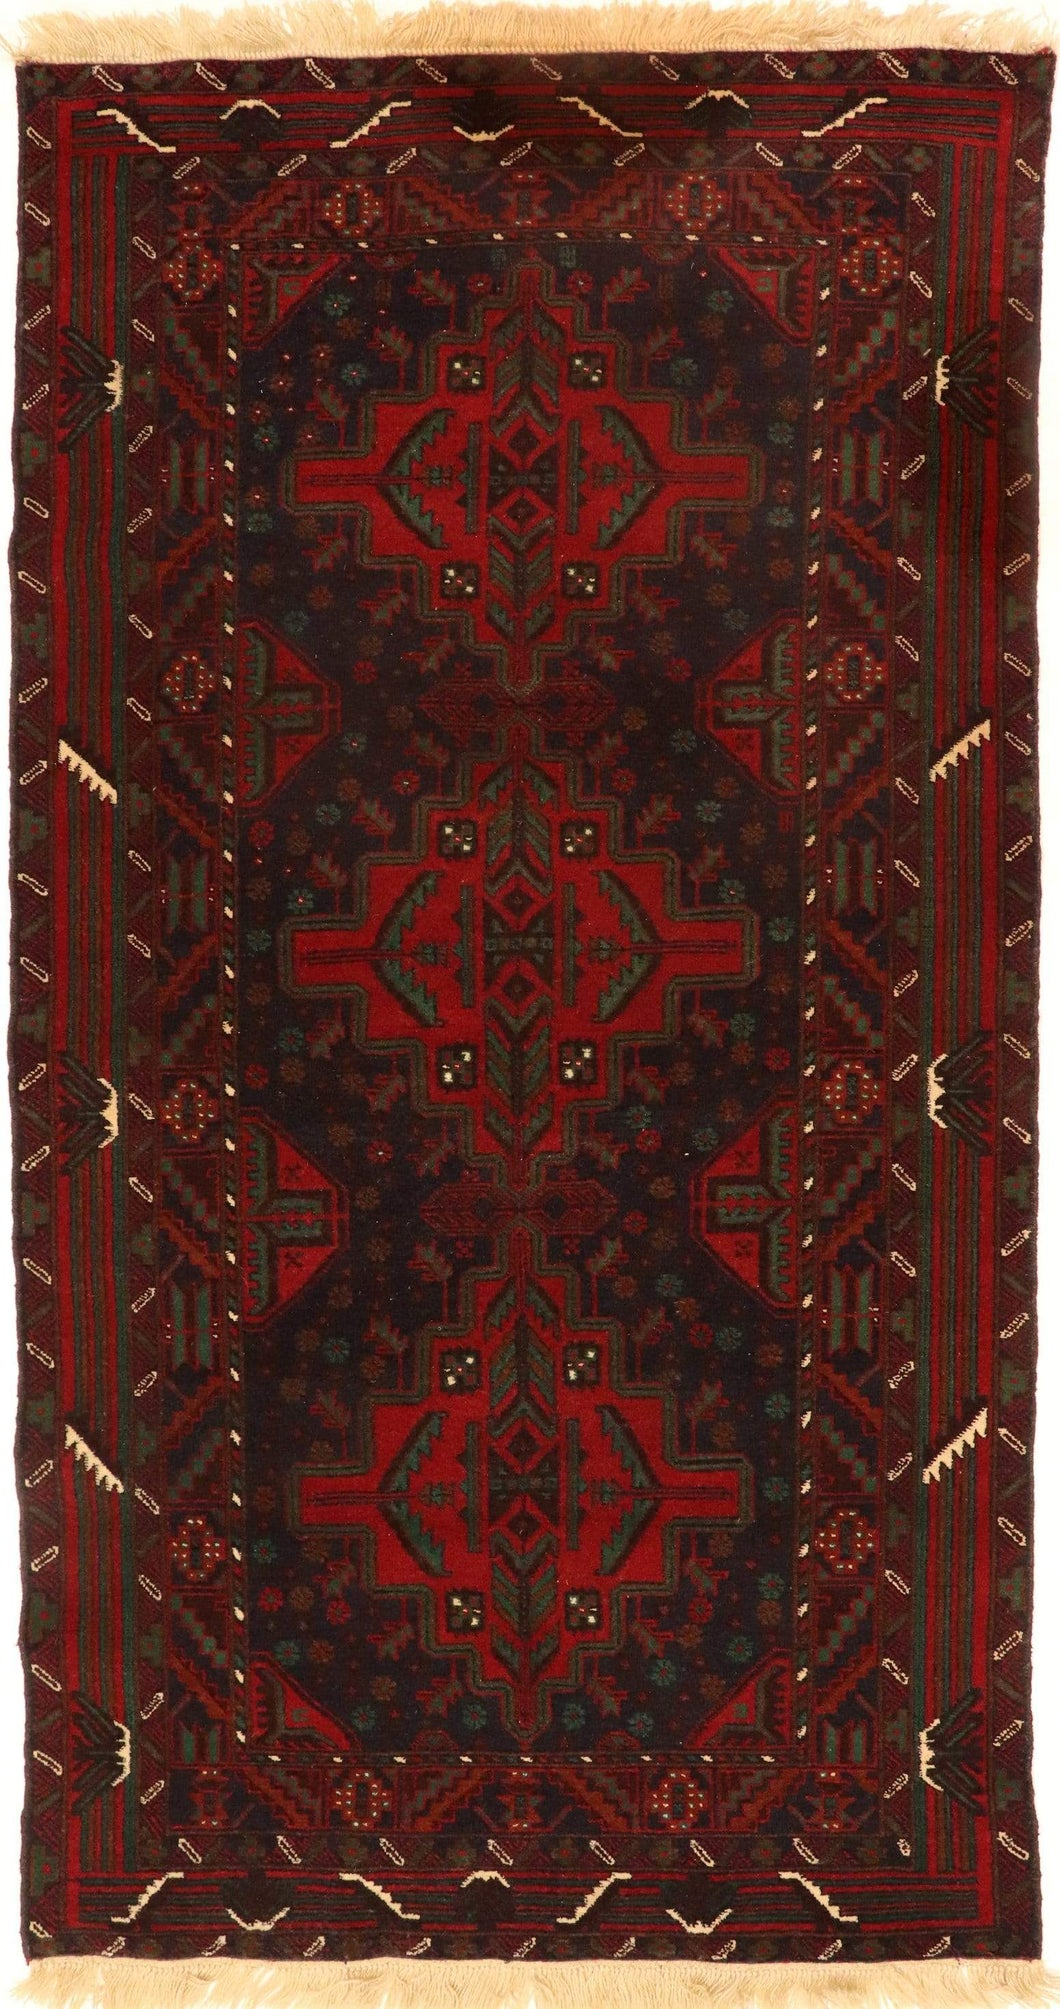 The Rugs Cafe Carpets 3.6x6.10 Baluch-Bukhara Vintage Rug